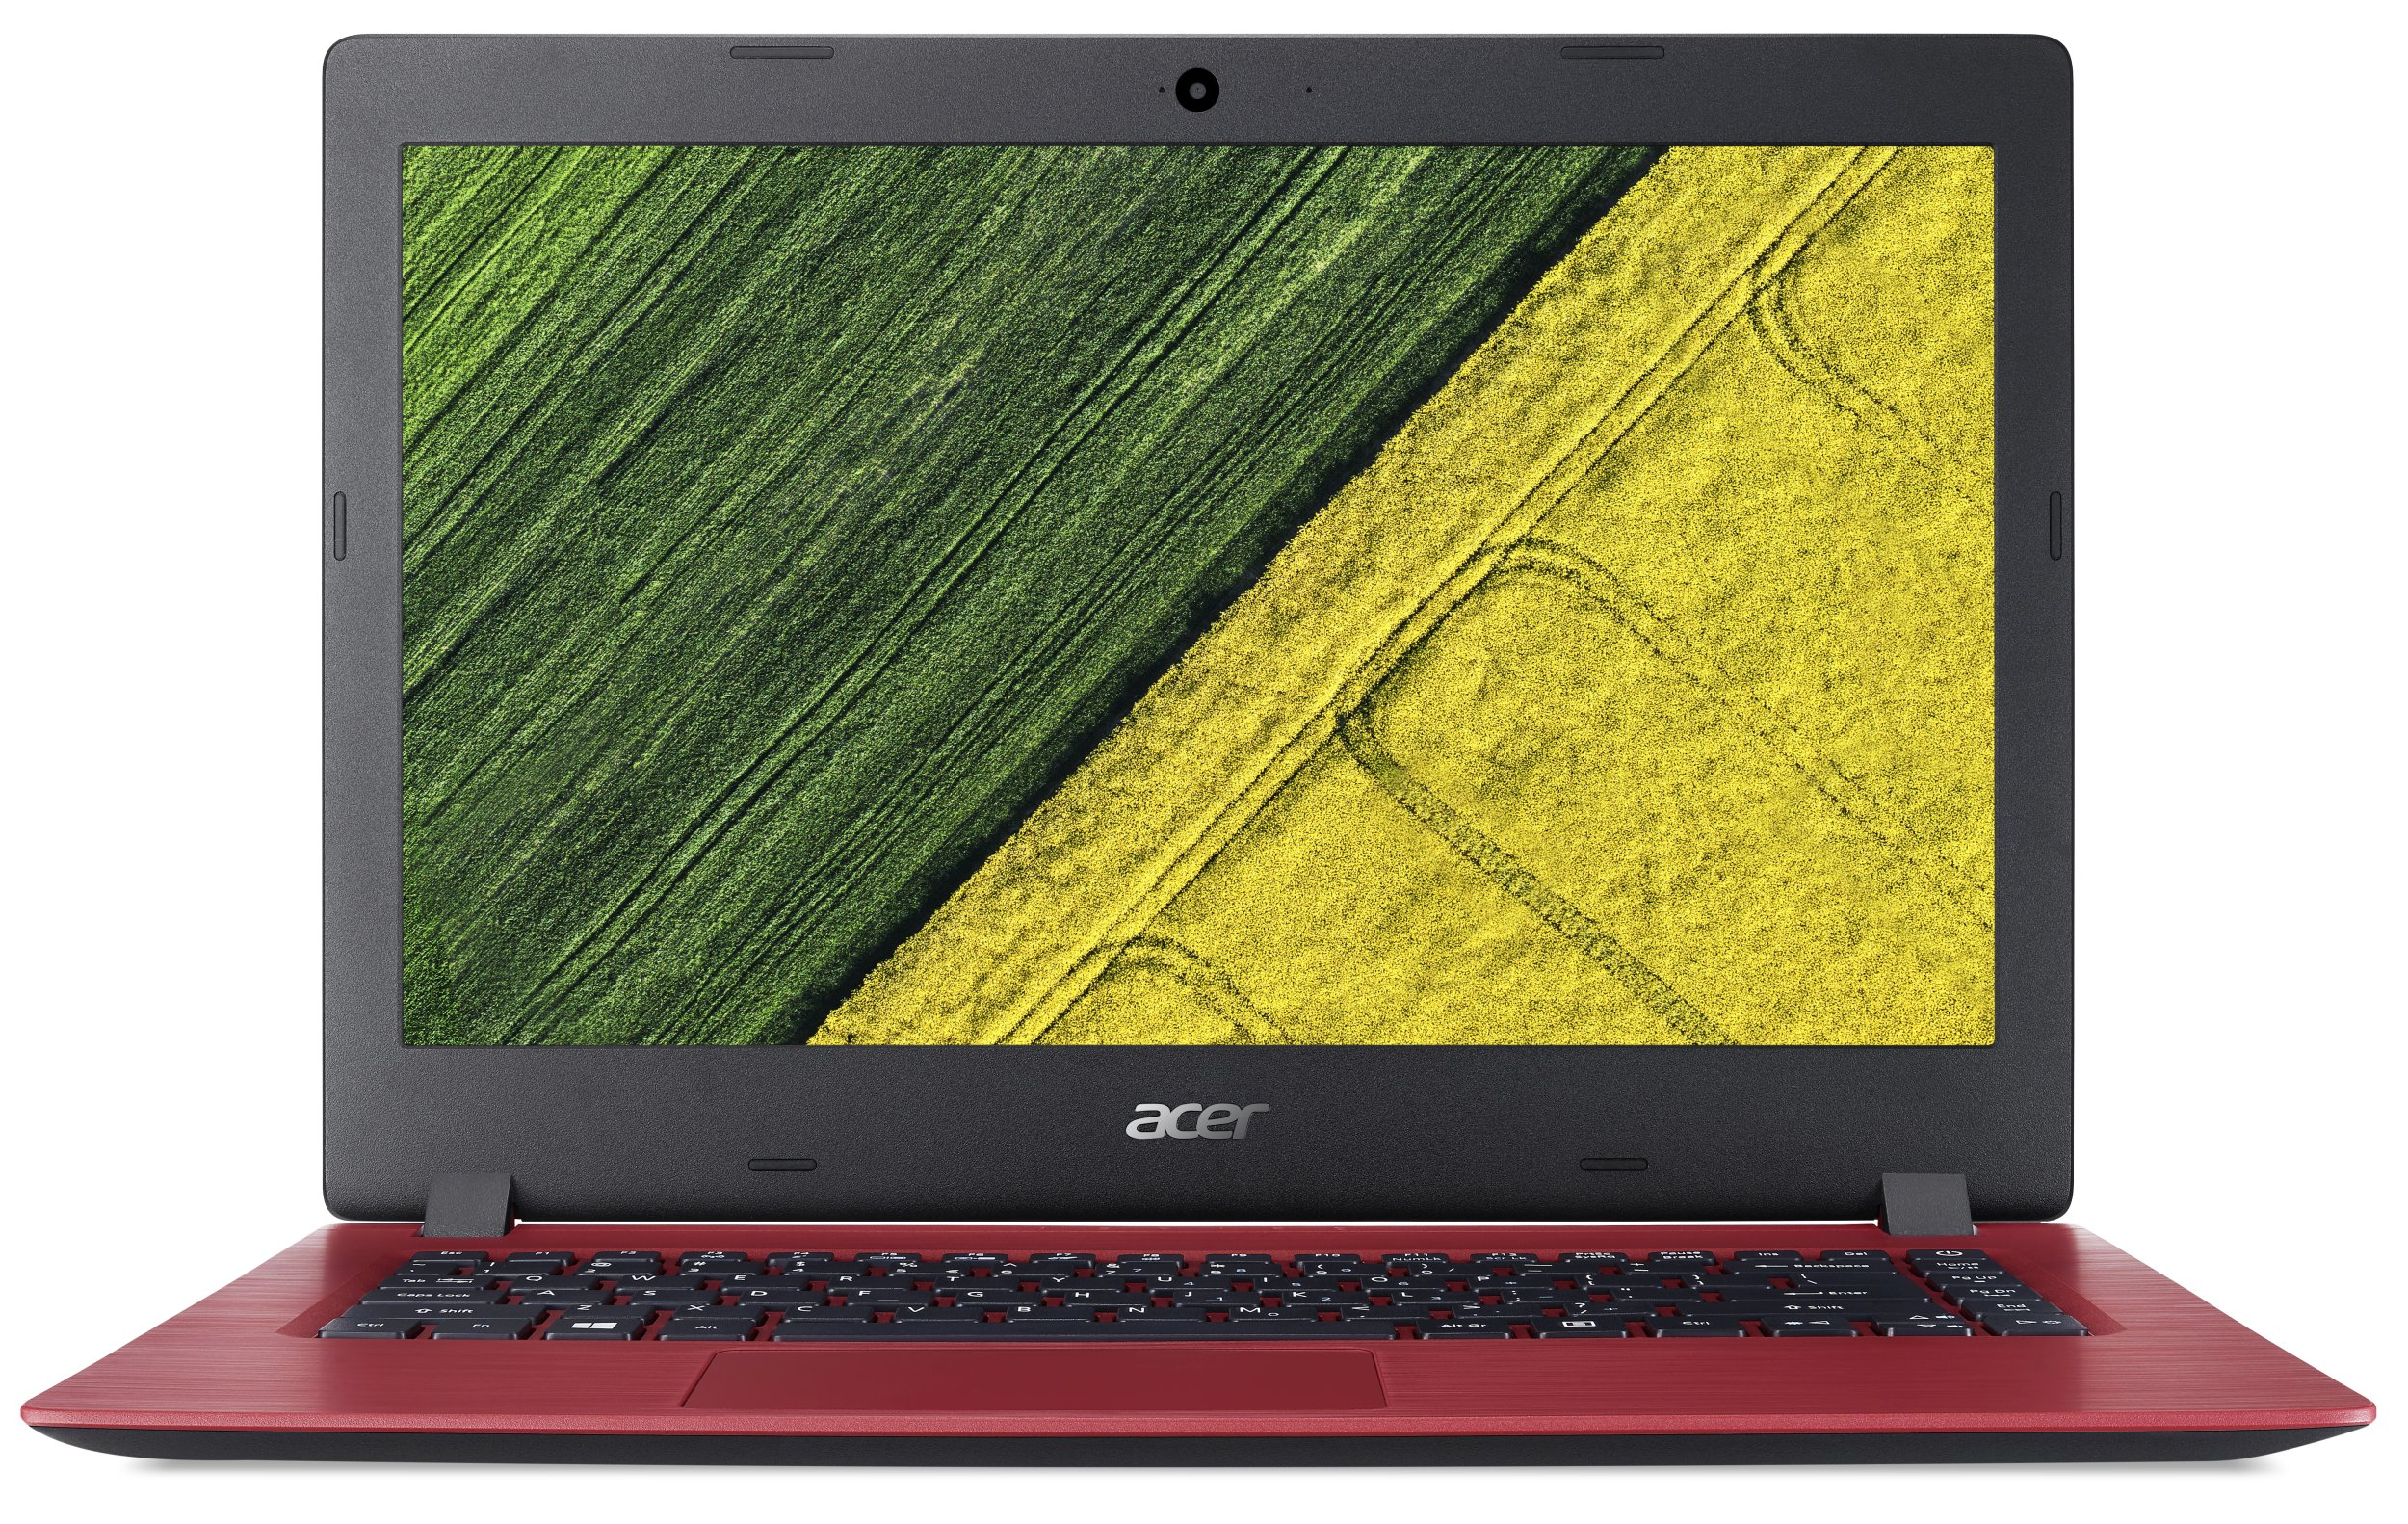 "Acer Aspire 1 (A114-31-C25P) Celeron N3350/4GB+N/A/64GB+N/A/14"" HD LCD/HD Graphics/BT/W10 Home/Red"